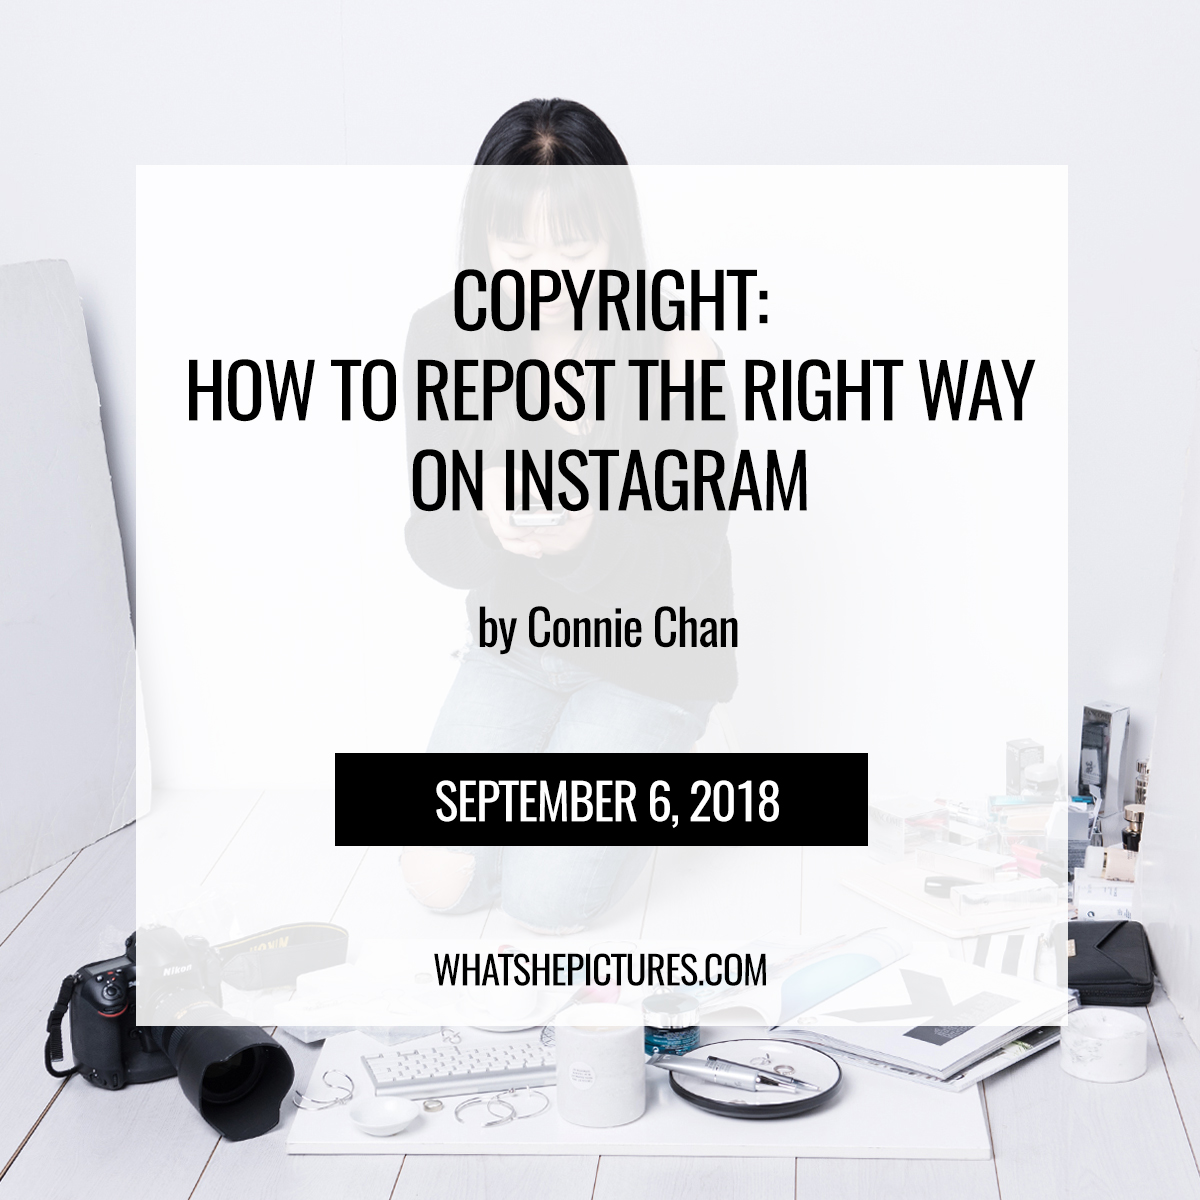 Copyright: How To Repost The Right Way On Instagram - What